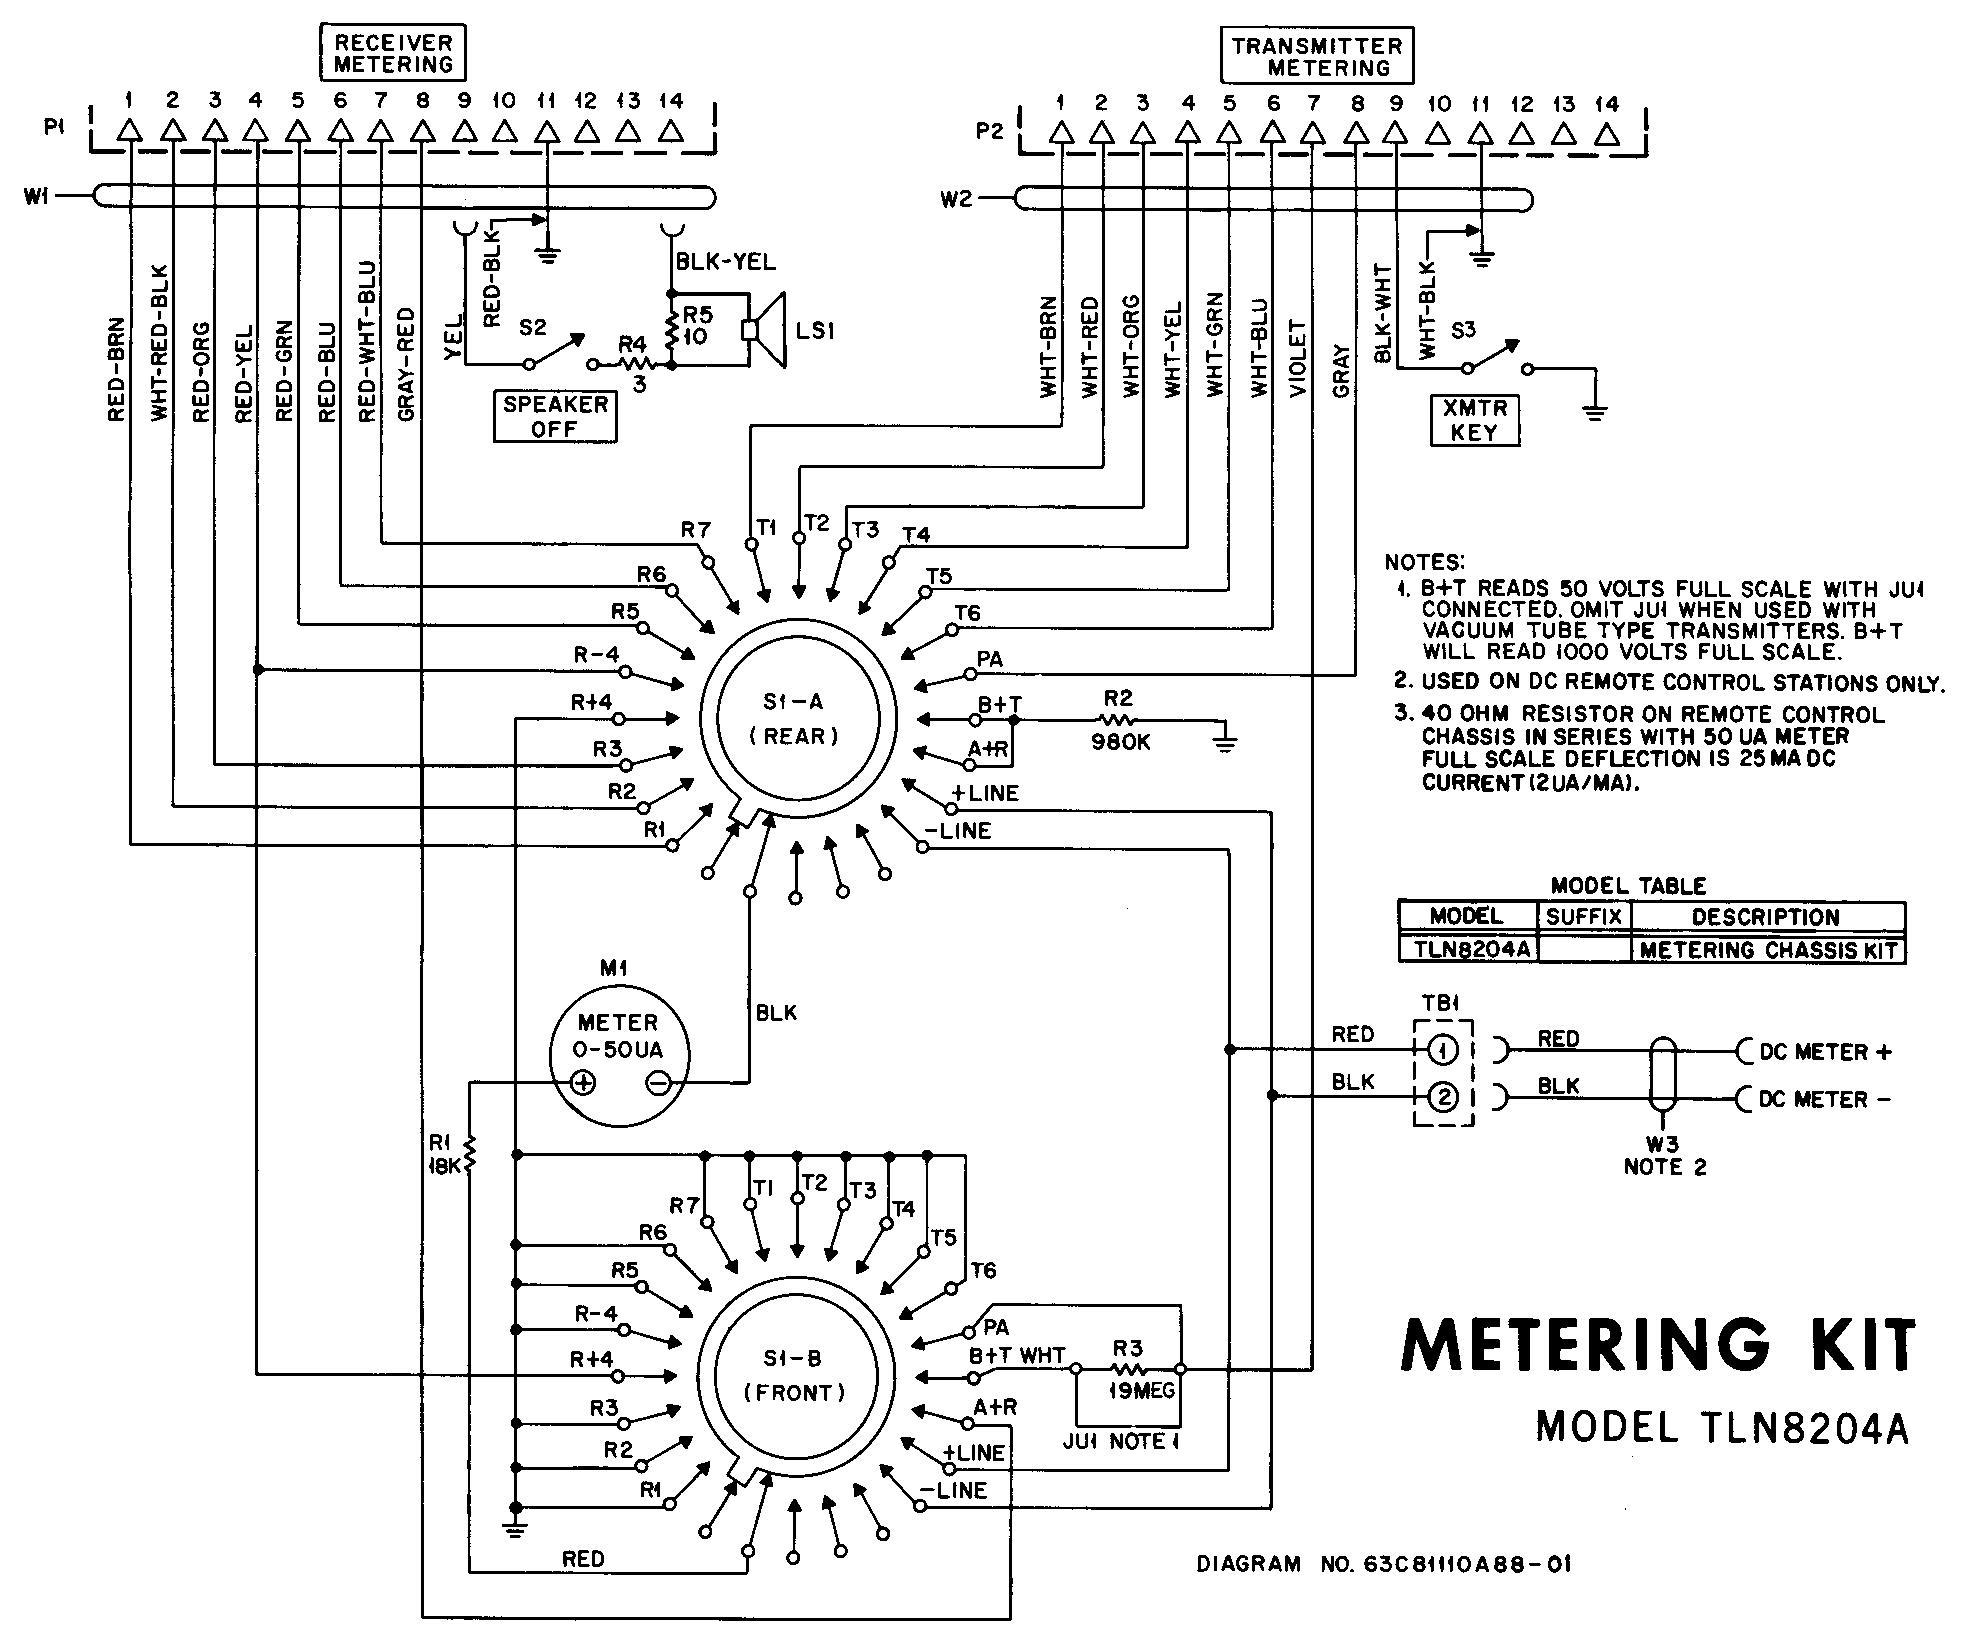 metering kit motorola motrac base station test meter 10 position rotary switch wiring diagram at virtualis.co